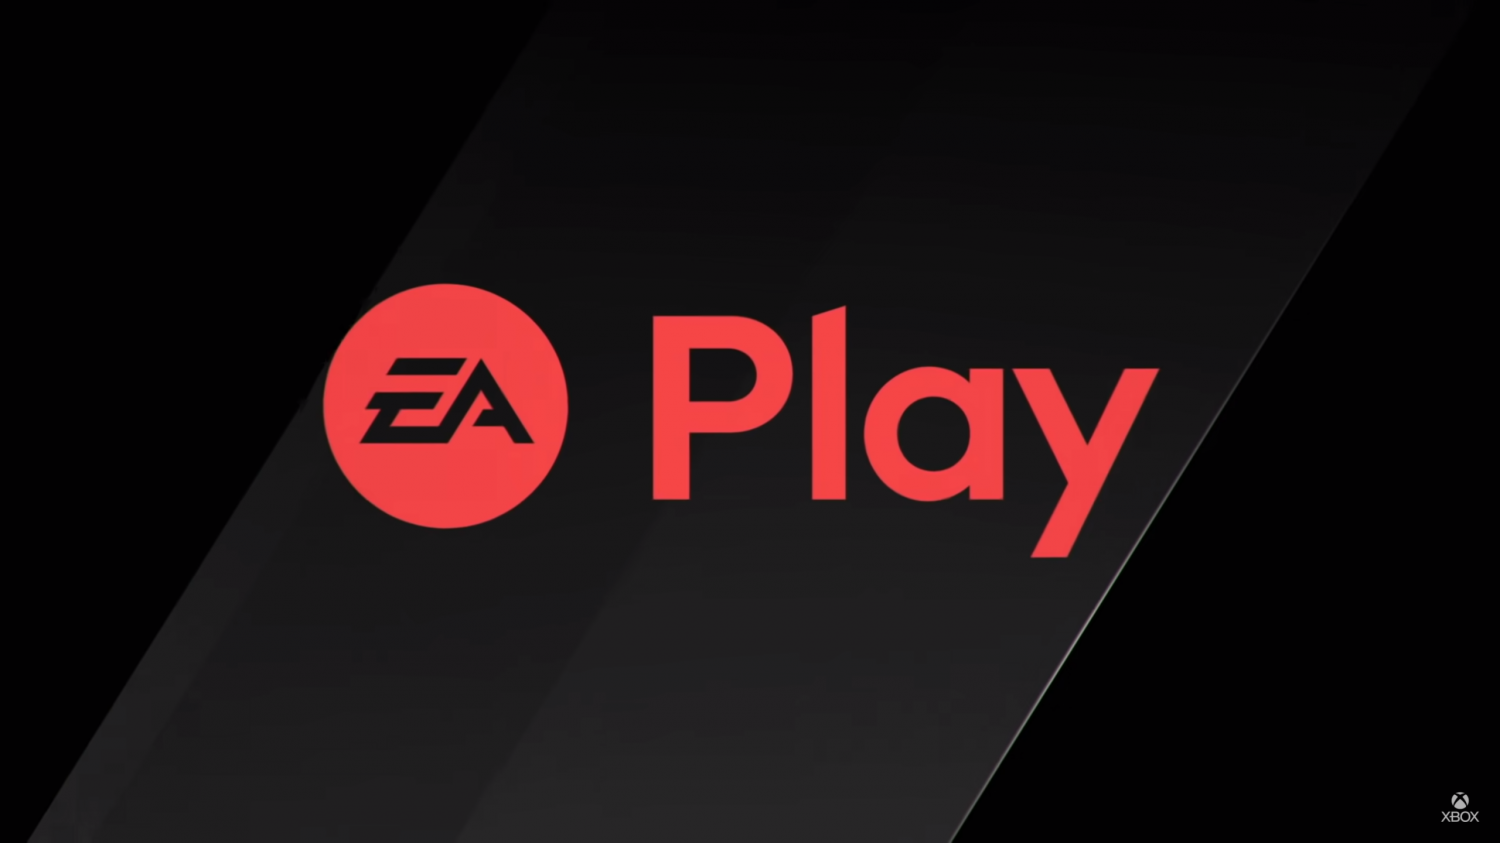 EA Play adds massive value to Game Pass at Xbox Series X|S launch